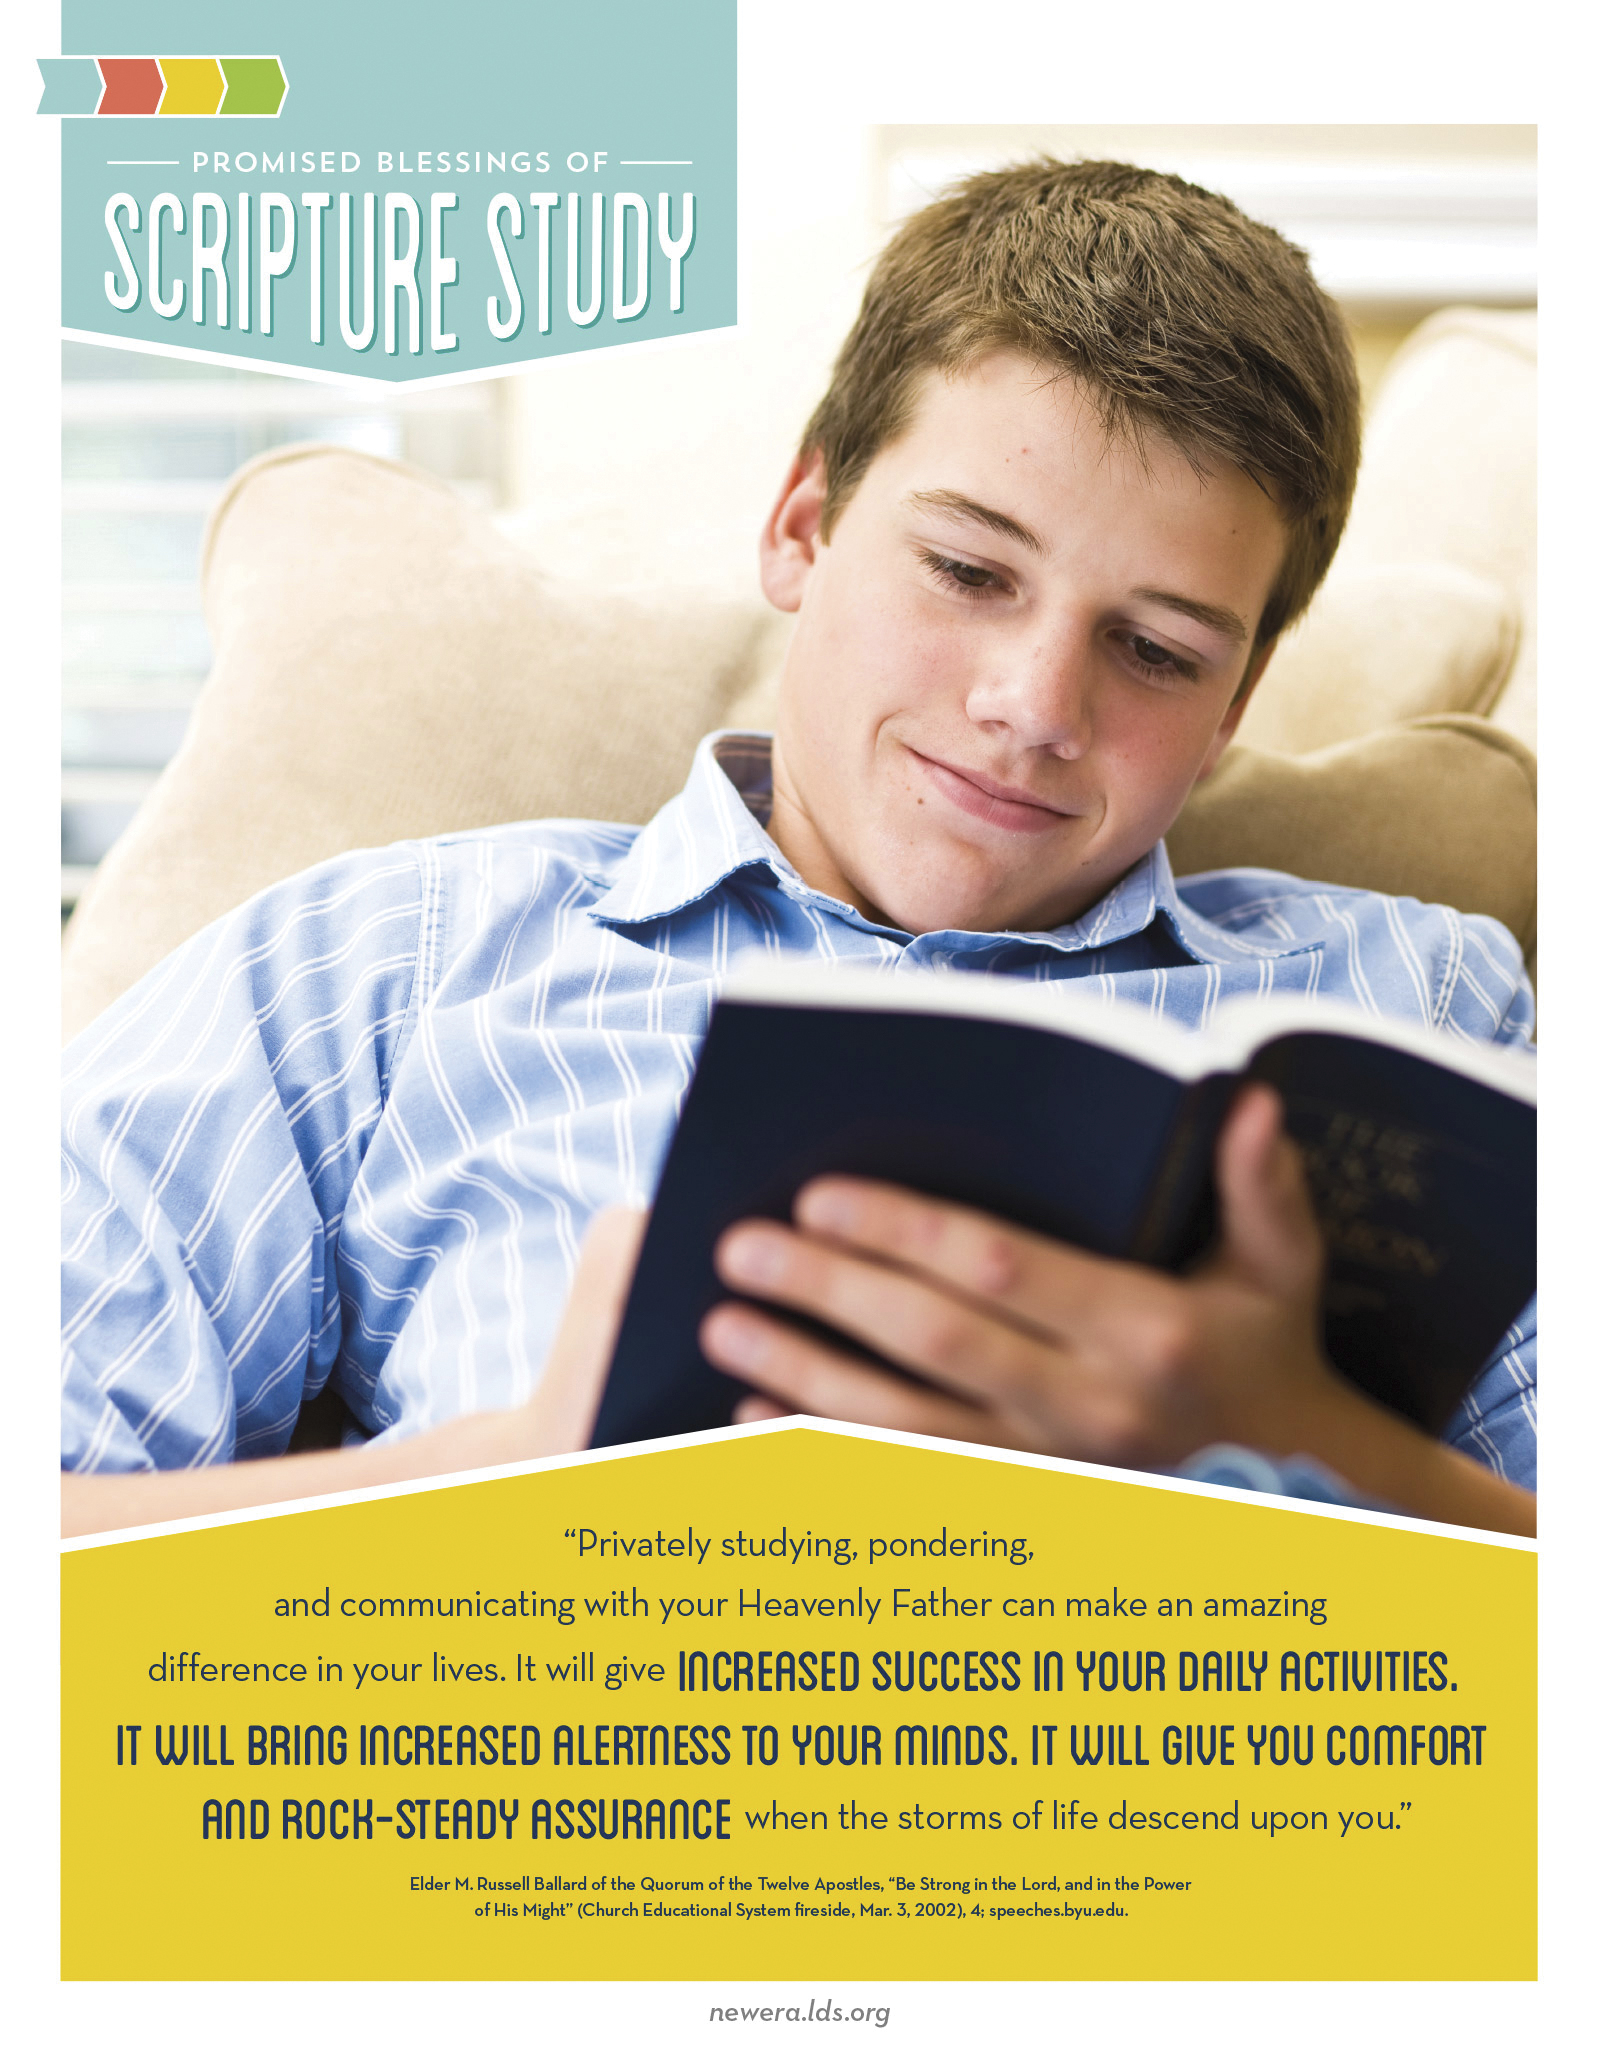 """""""Privately studying, pondering, and communicating with your Heavenly Father can make an amazing difference in your lives. It will give increased success in your daily activities. It will bring increased alertness to your minds. It will give you comfort and rock-steady assurance when the storms of life descend upon you.""""—Elder M. Russell Ballard, """"Be Strong in the Lord, and in the Power of His Might"""""""